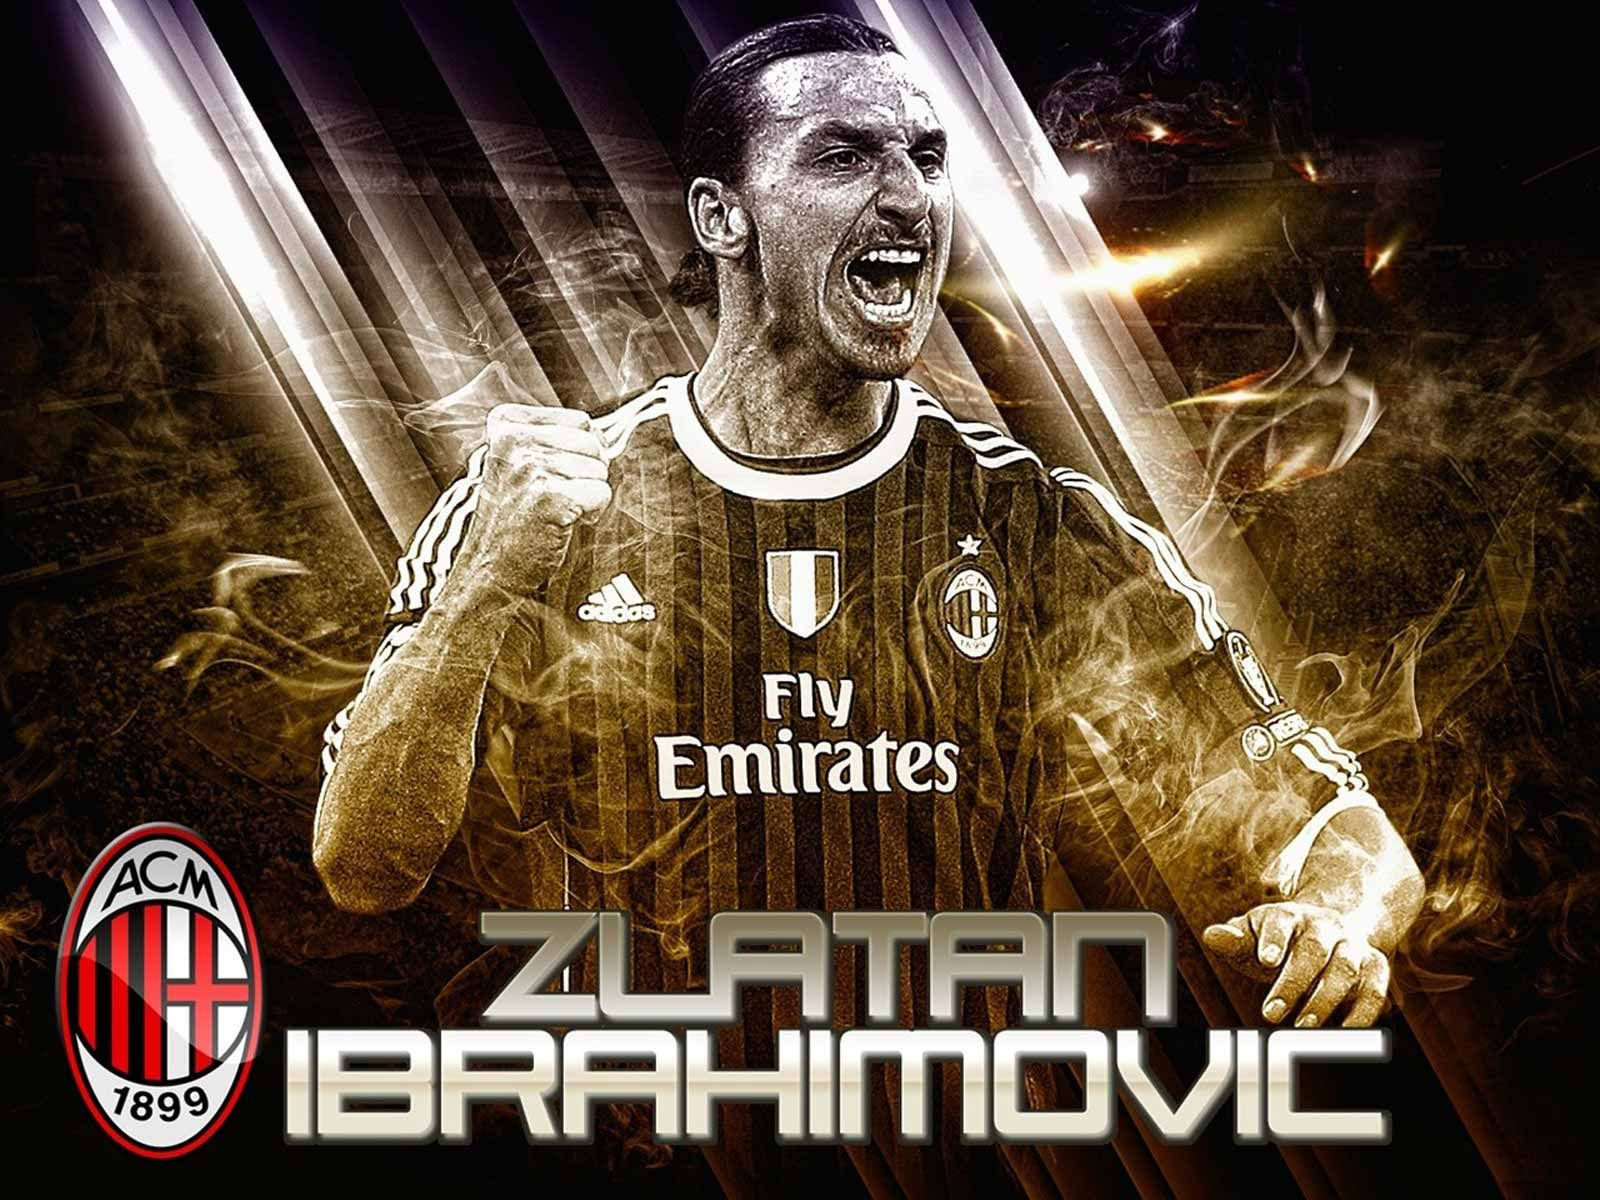 Zlatan Ibrahimovic Fly Emirates Ac Milan Hd Picture